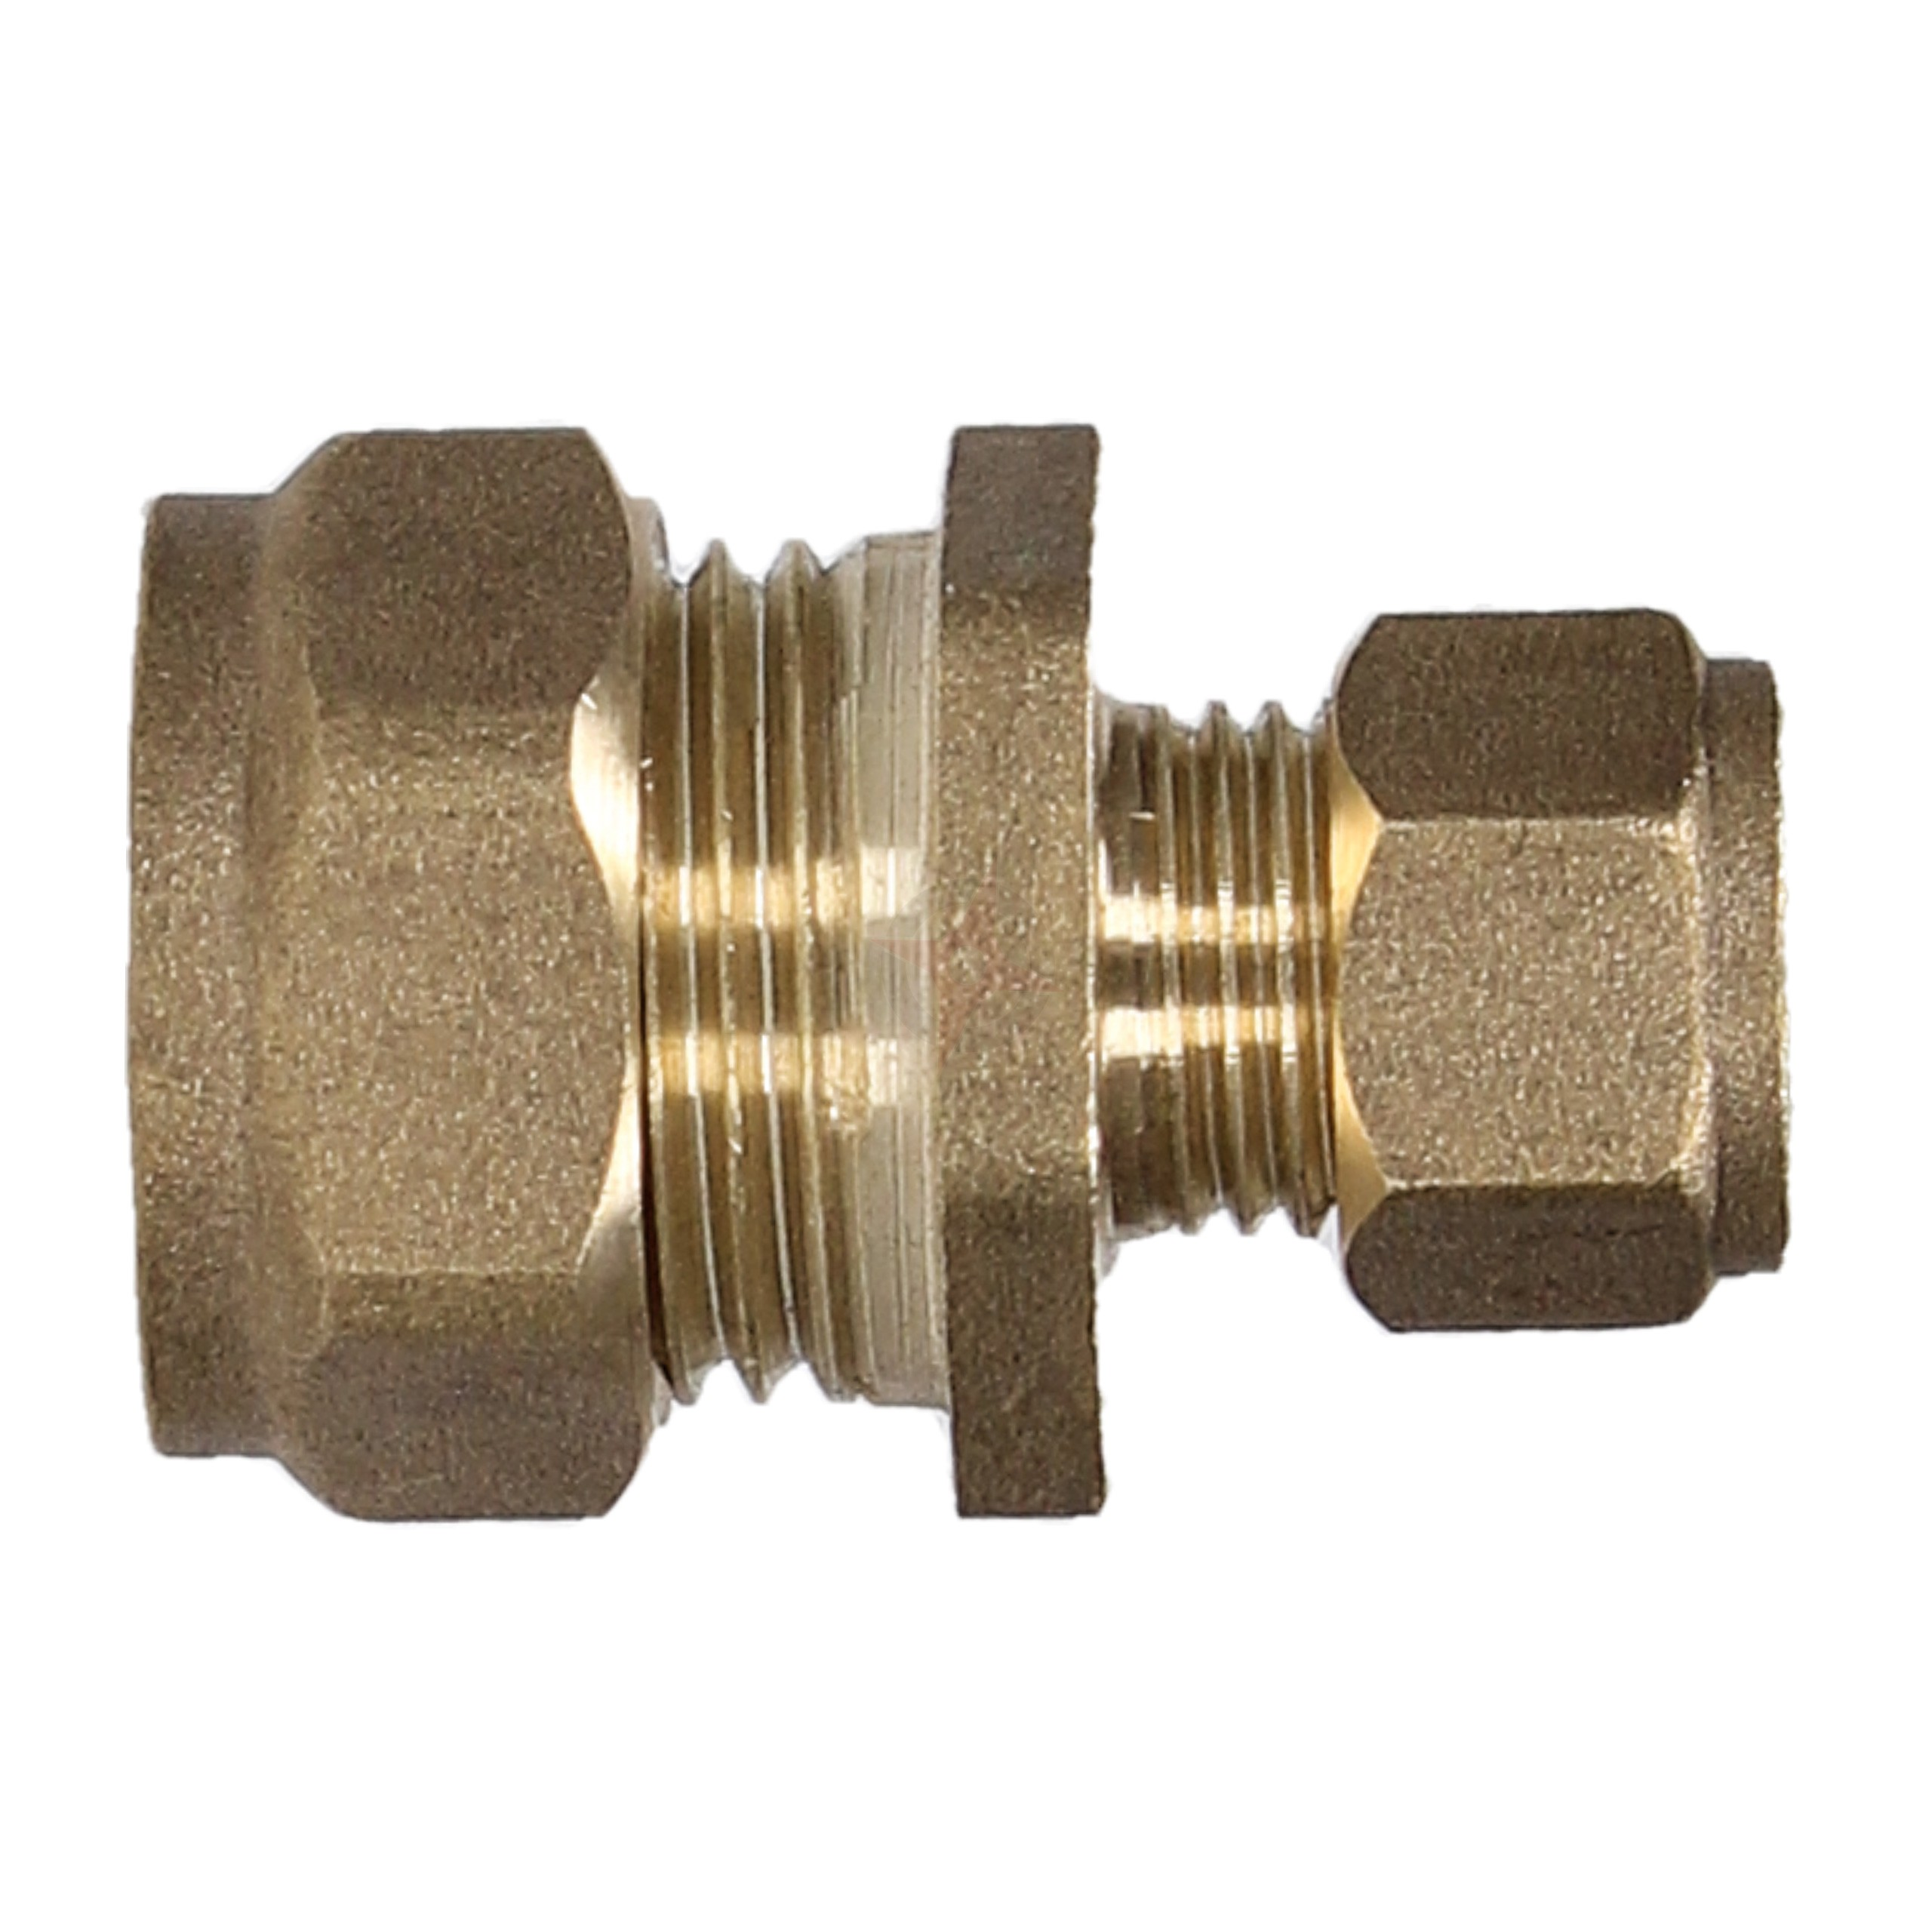 Compression 15mm x 8mm Reducing Coupler